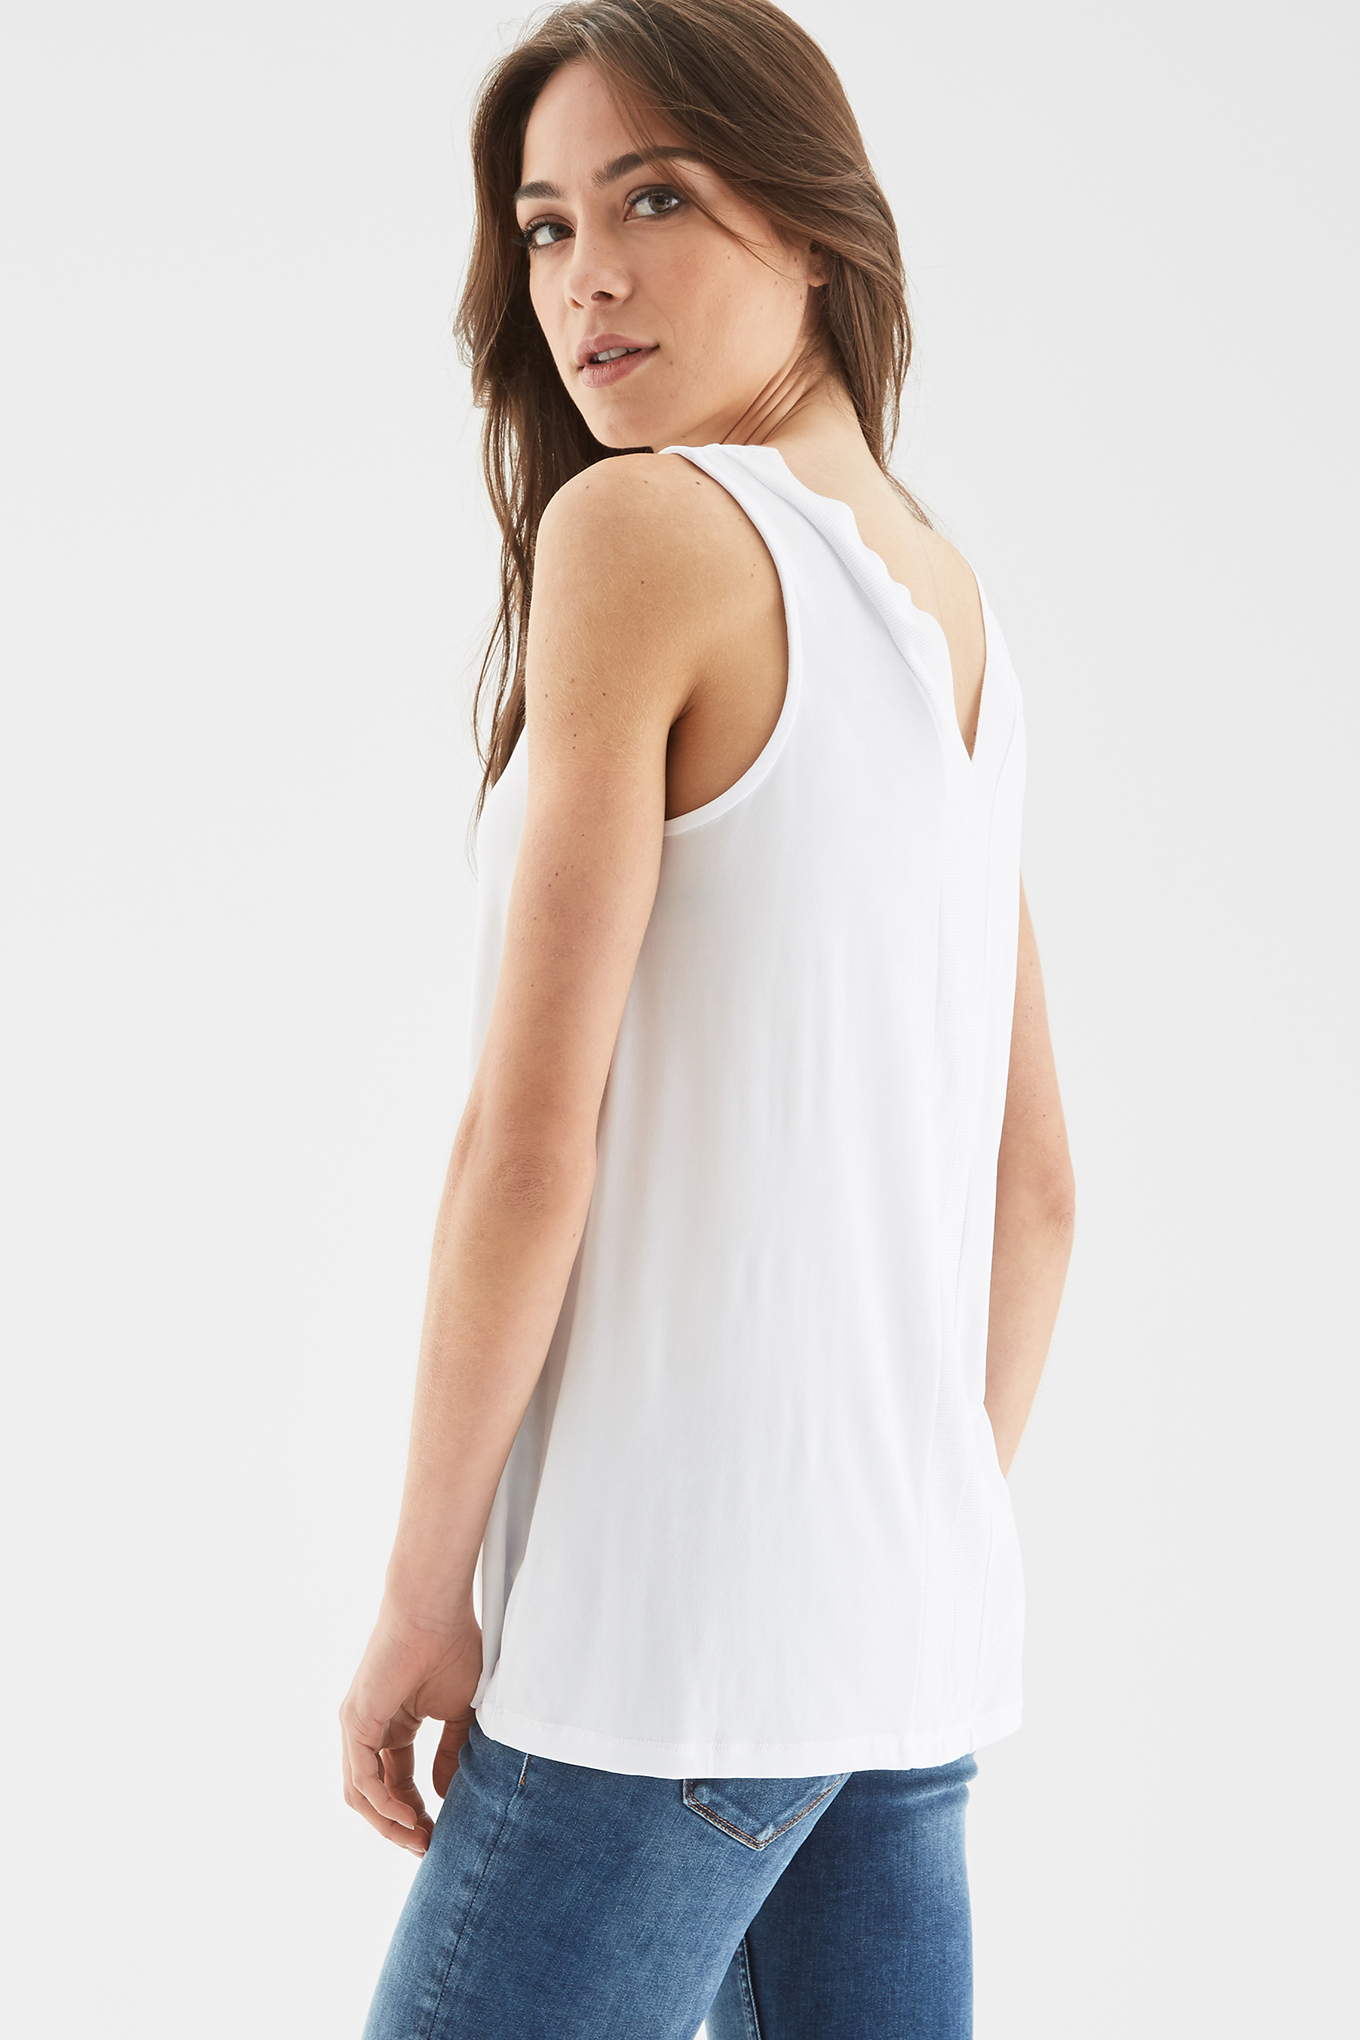 T-Shirt White Casual Woman